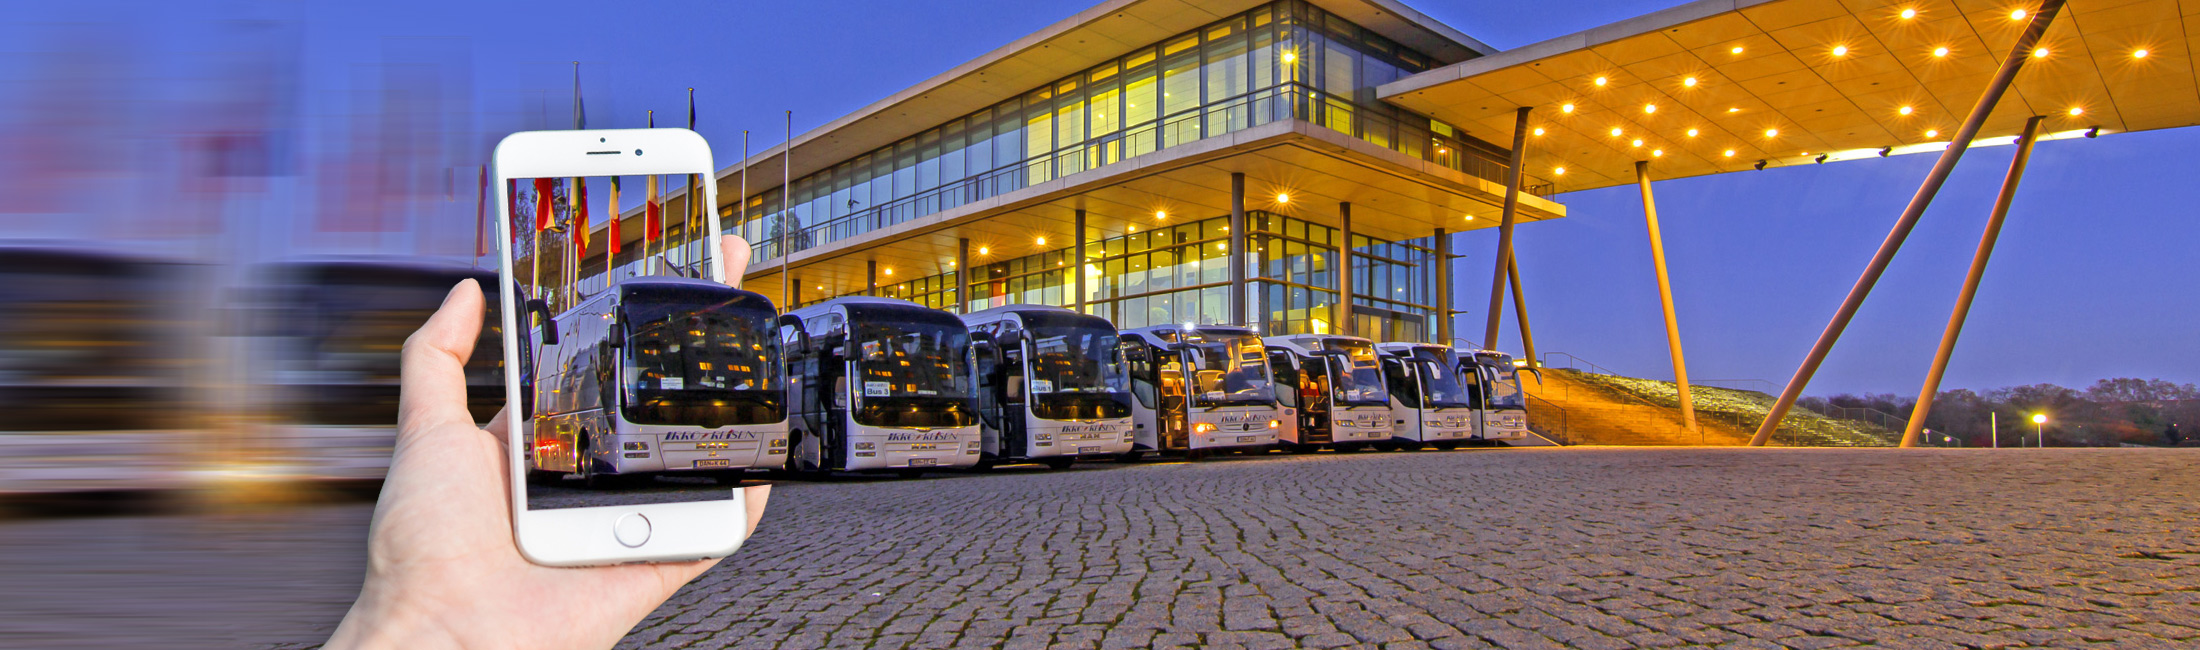 Coach Charter Germany and Europe - Get inspired!